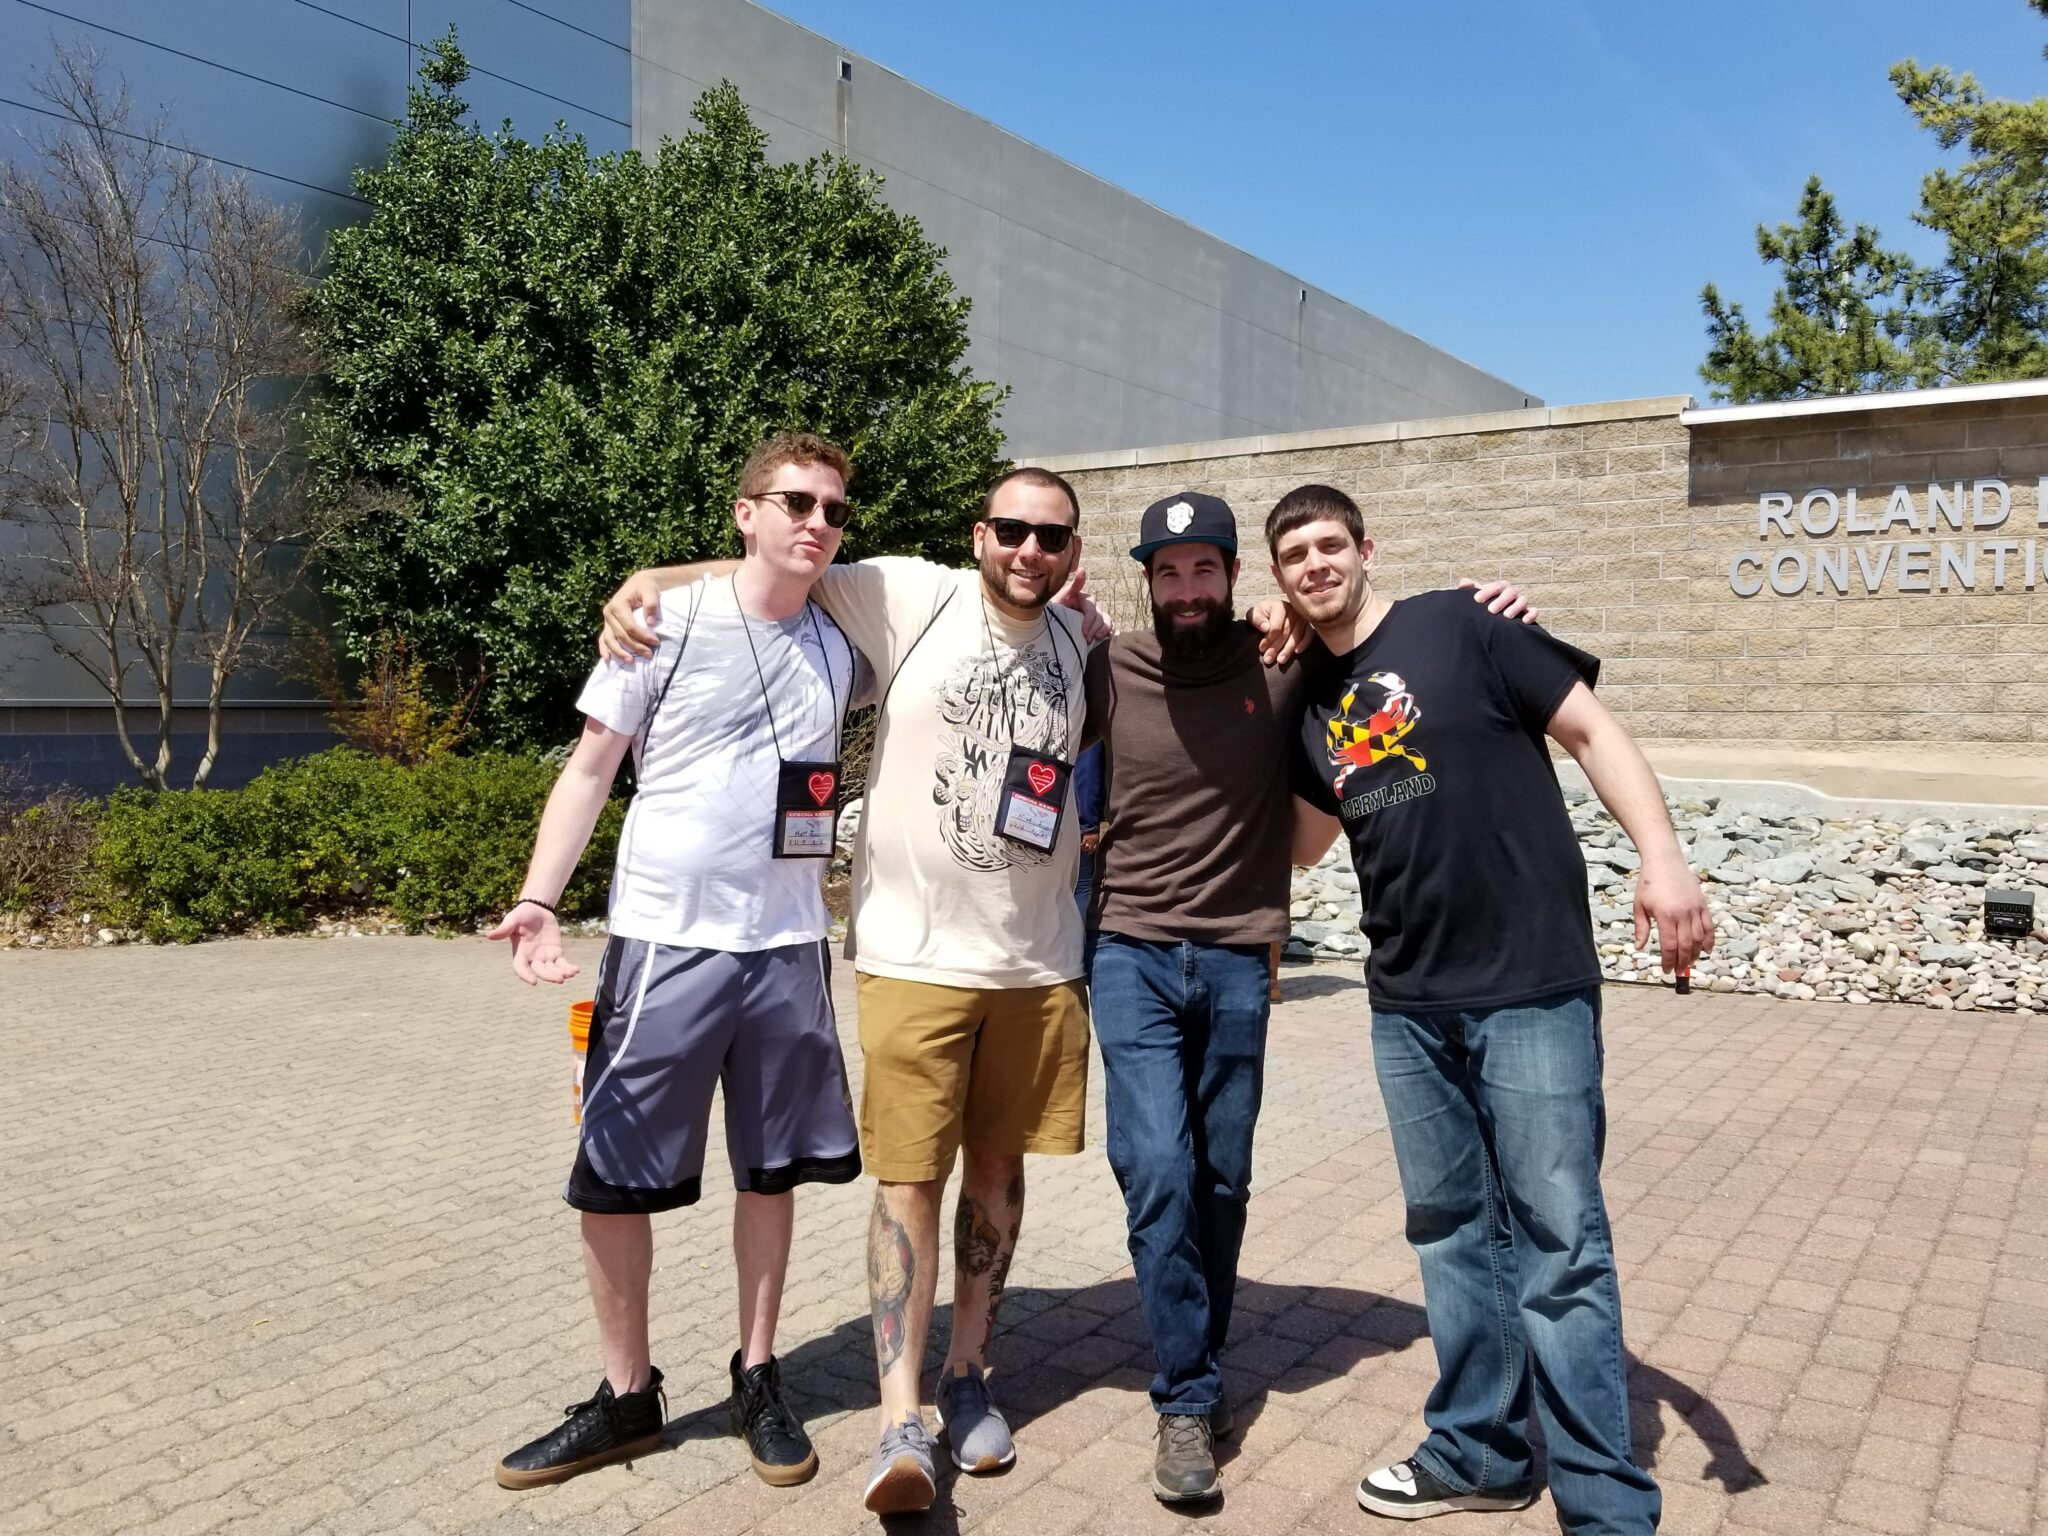 A group of four men smile and pose for a picture with their arms on each other's shoulders pose outside a convention center on a sunny day